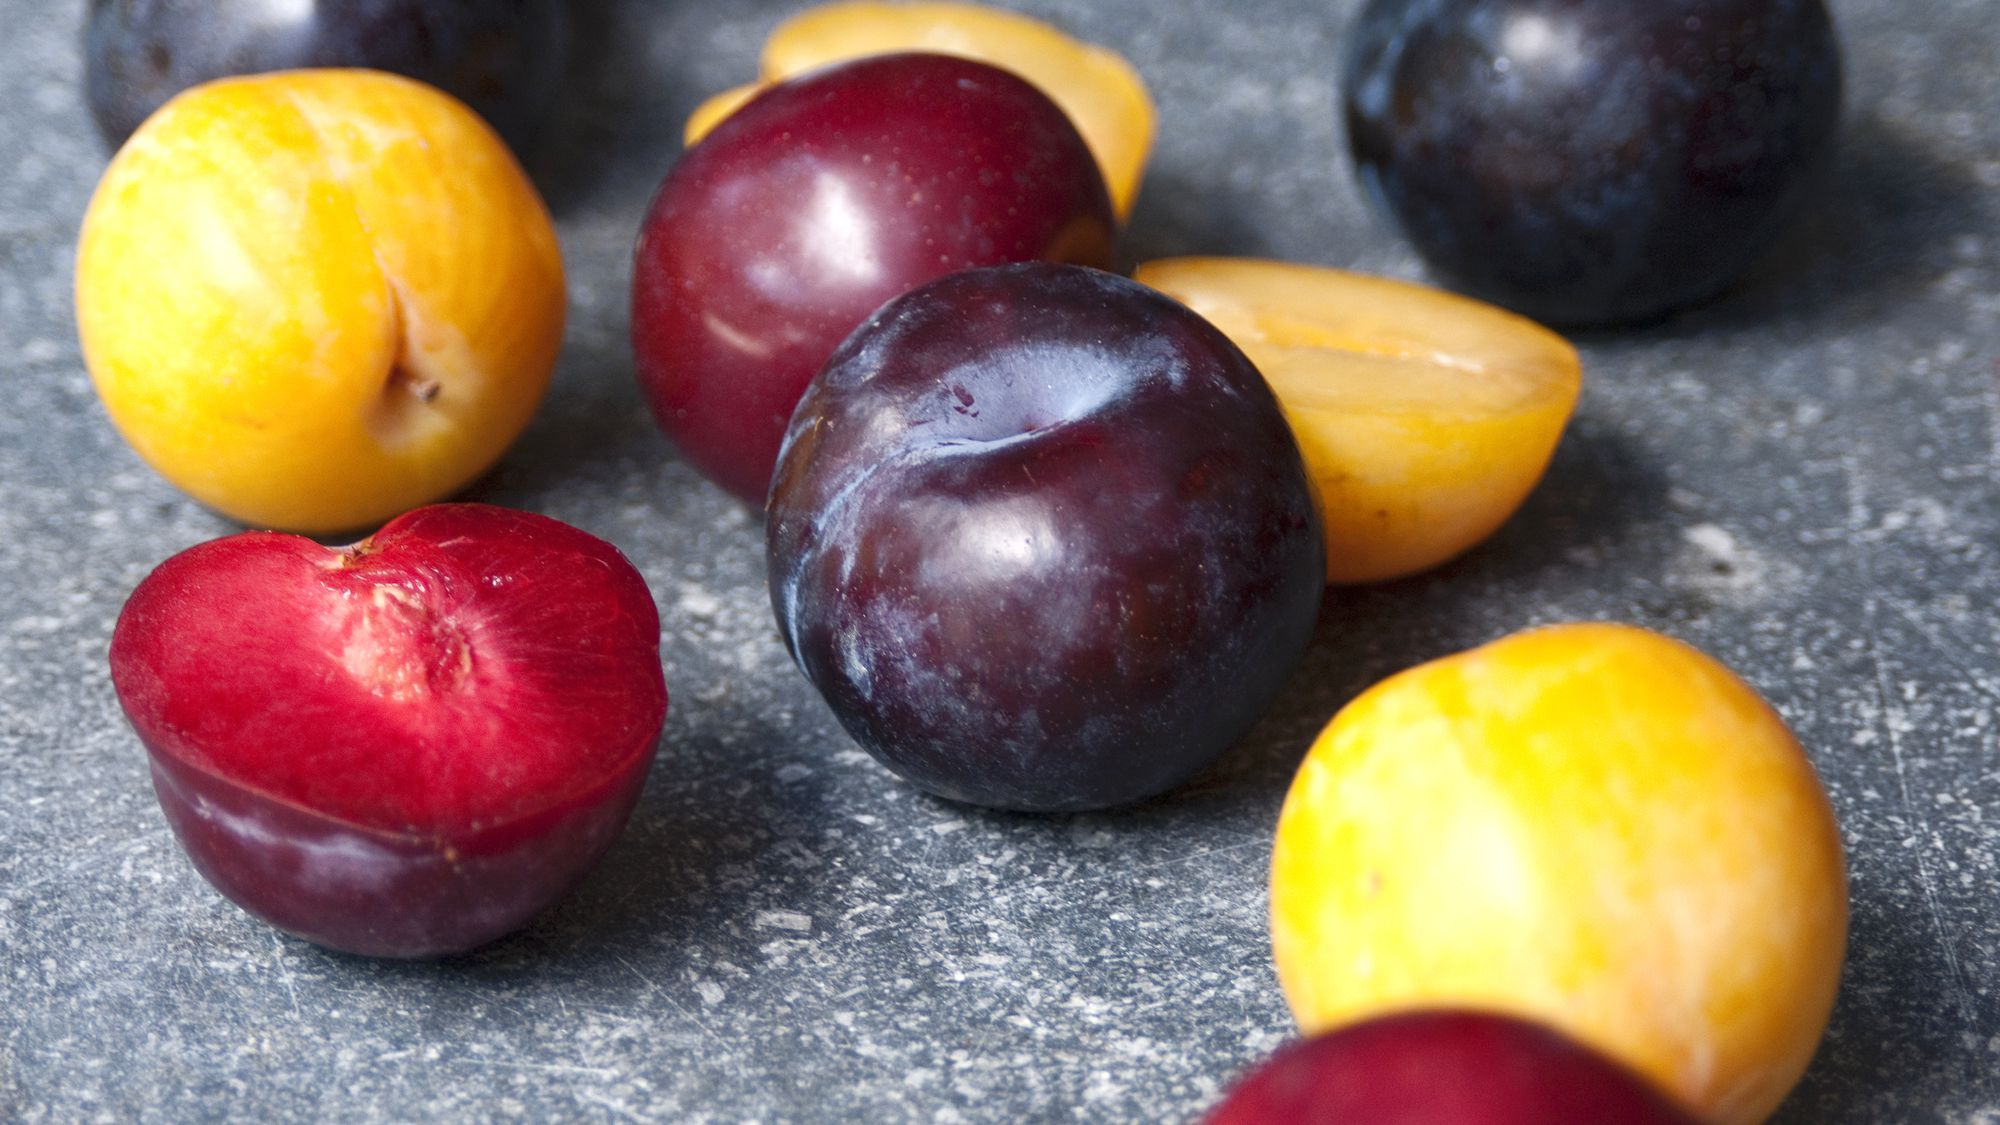 Plum and Prunes Selection and Storage Information